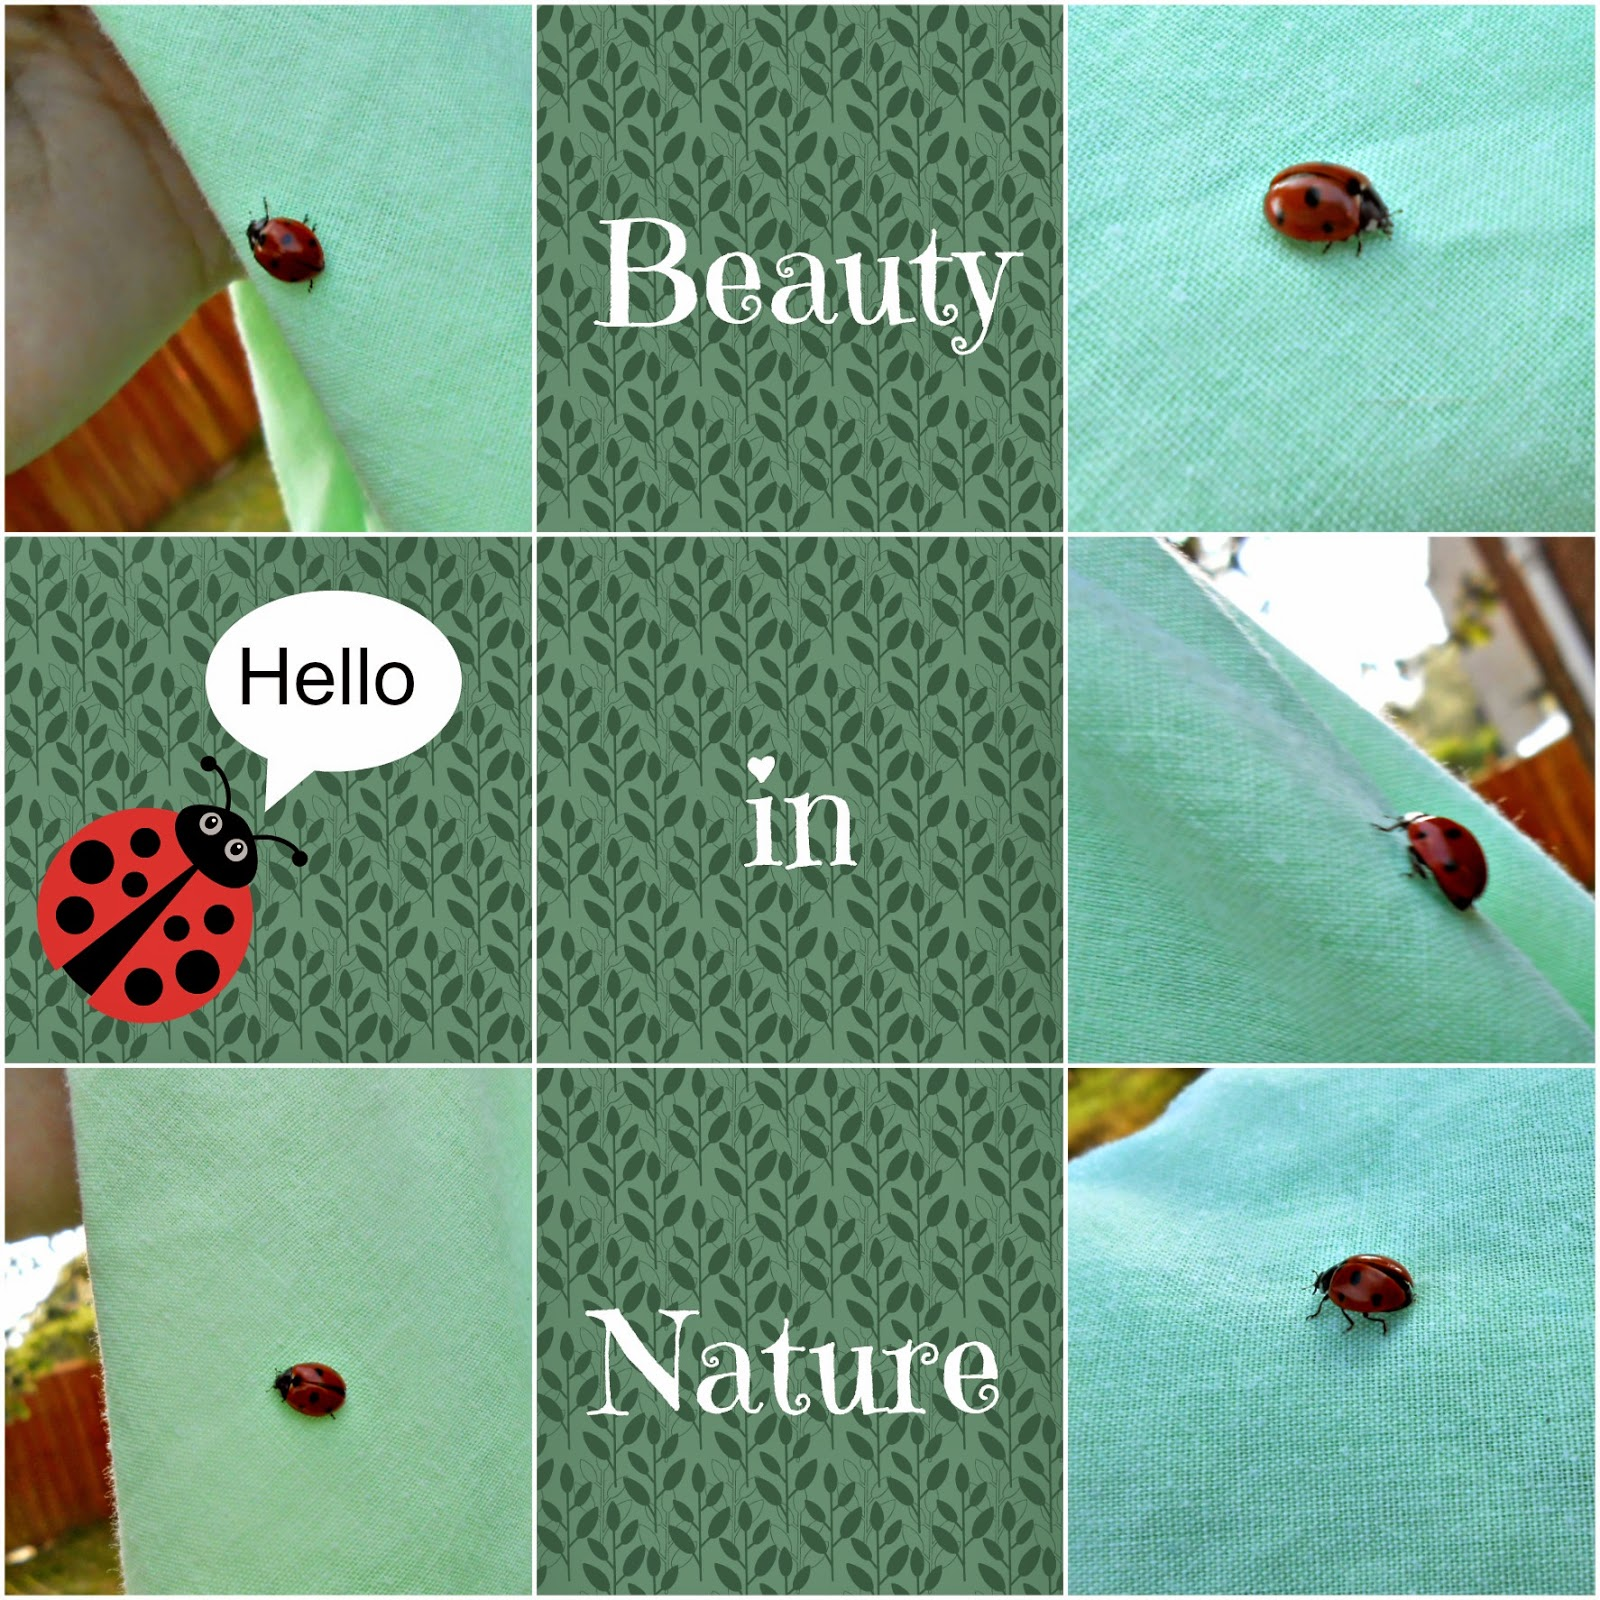 Ladybird, Beauty, Nature,